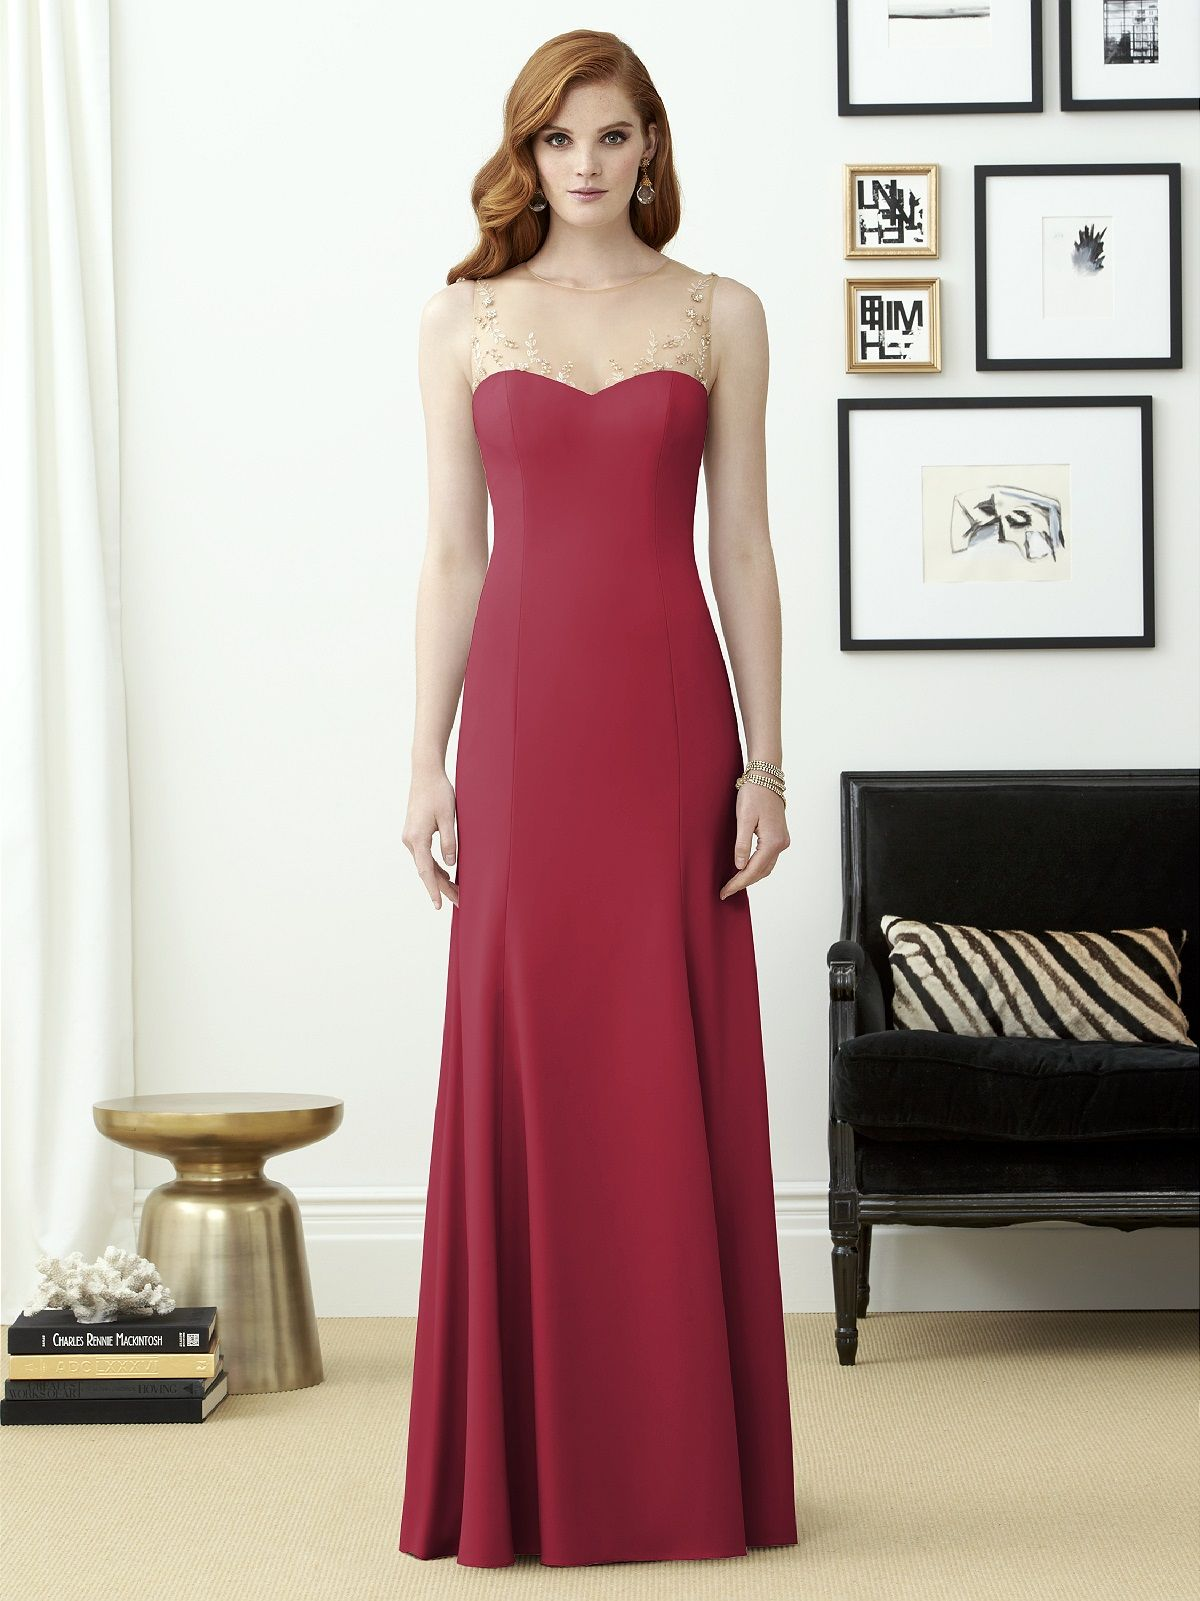 Dessy collection style 2964 trumpets dessy collection style 2964 strapless bridesmaid dressesdessy ombrellifo Image collections